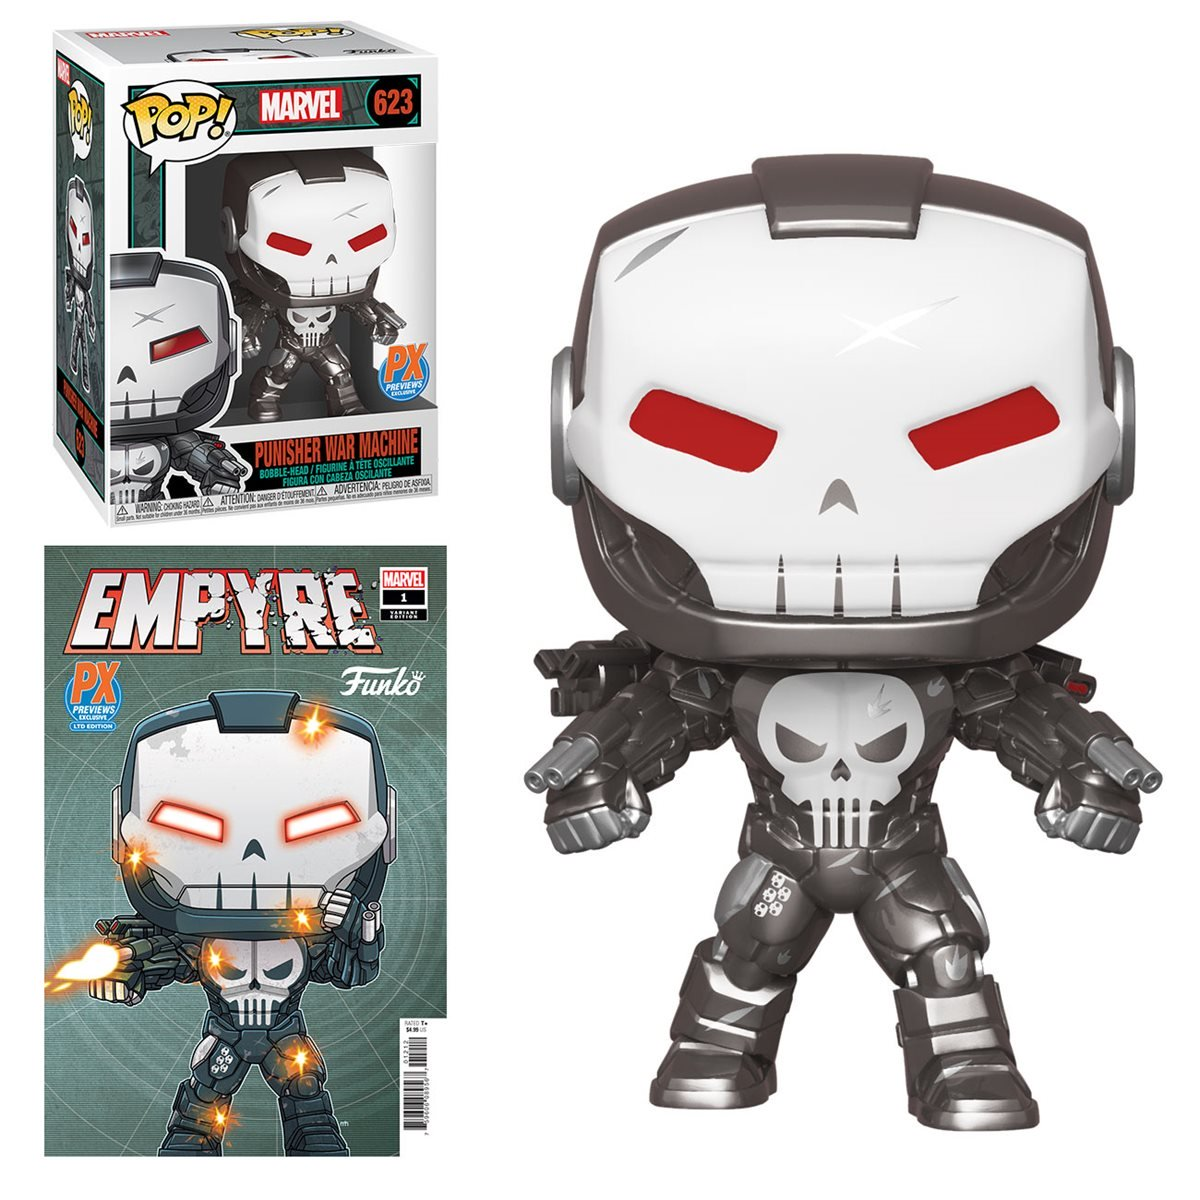 Funko Shows New Marvel Pop Vinyls and Comic Books